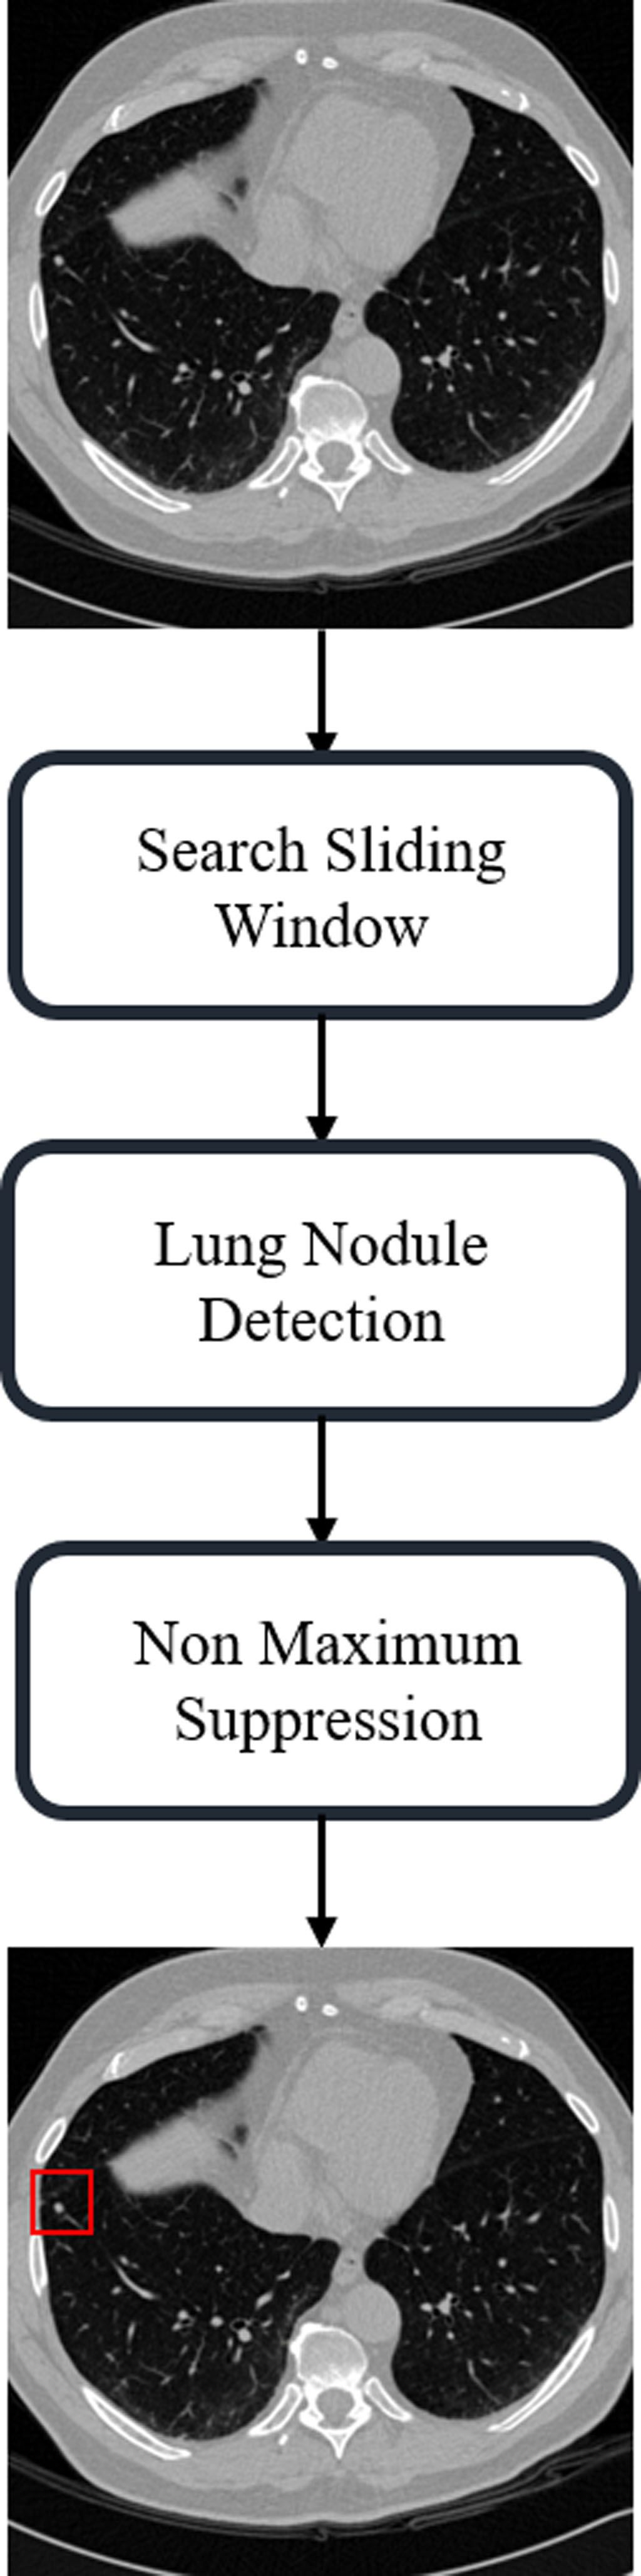 Using 3-D Capsule Network for Nodule Detection in Lung CT Image